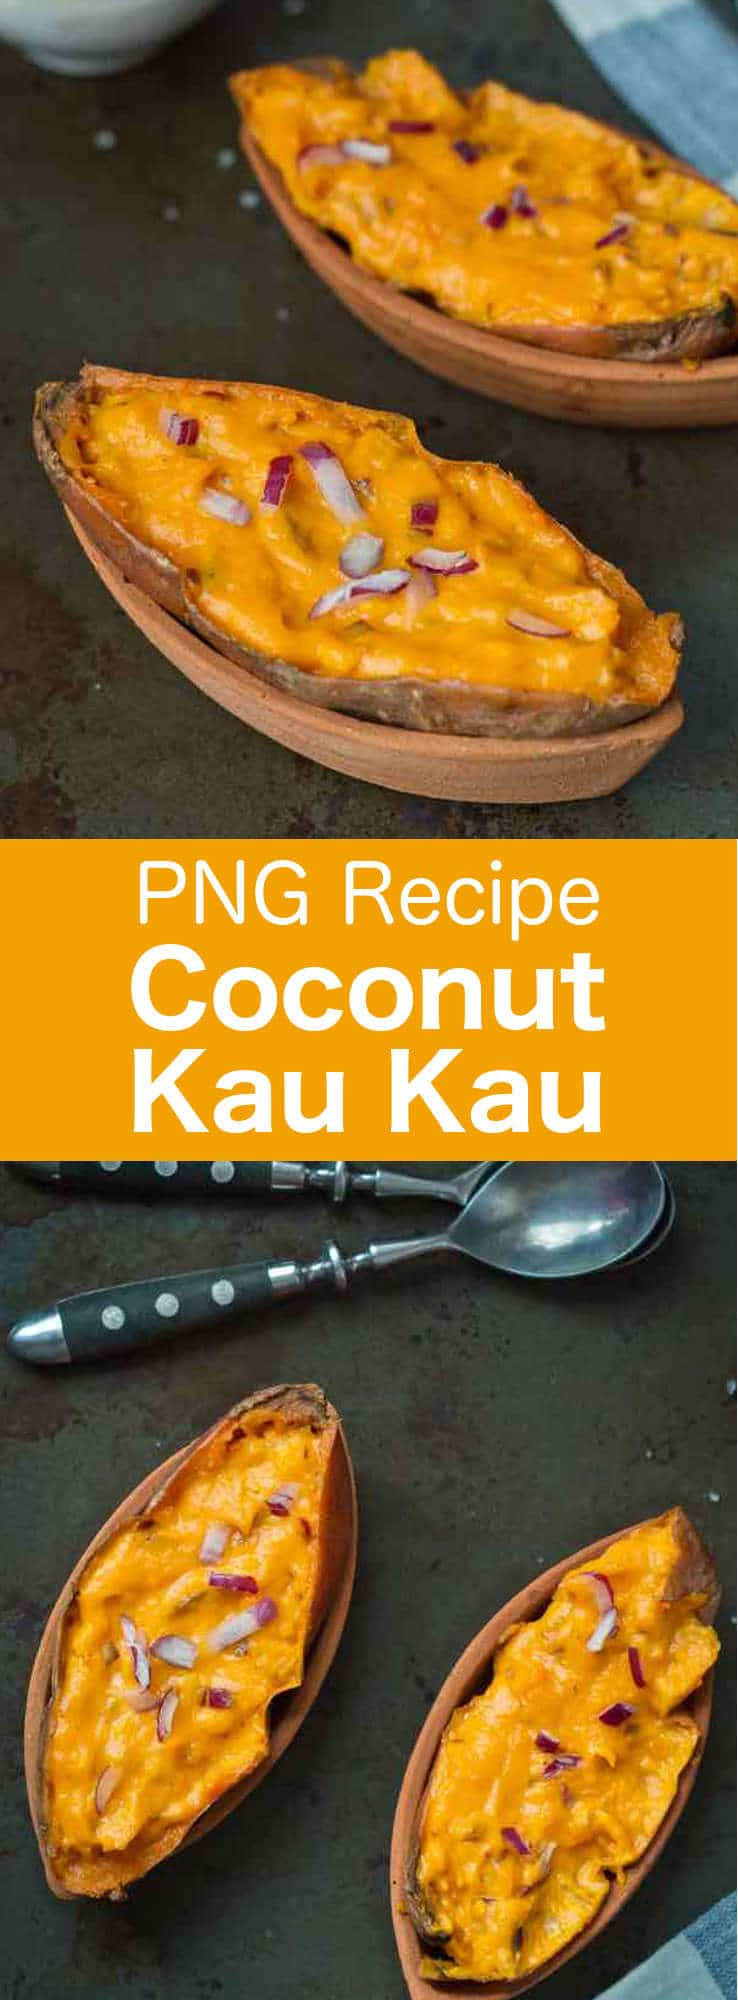 Coconut kau kau is a delicious baked sweet potato recipe with coconut cream from Papua New Guinea. #PNG #PapuanCuisine #PapuanRecipe #PapuaNewGuinea #WorldCuisine #196flavors